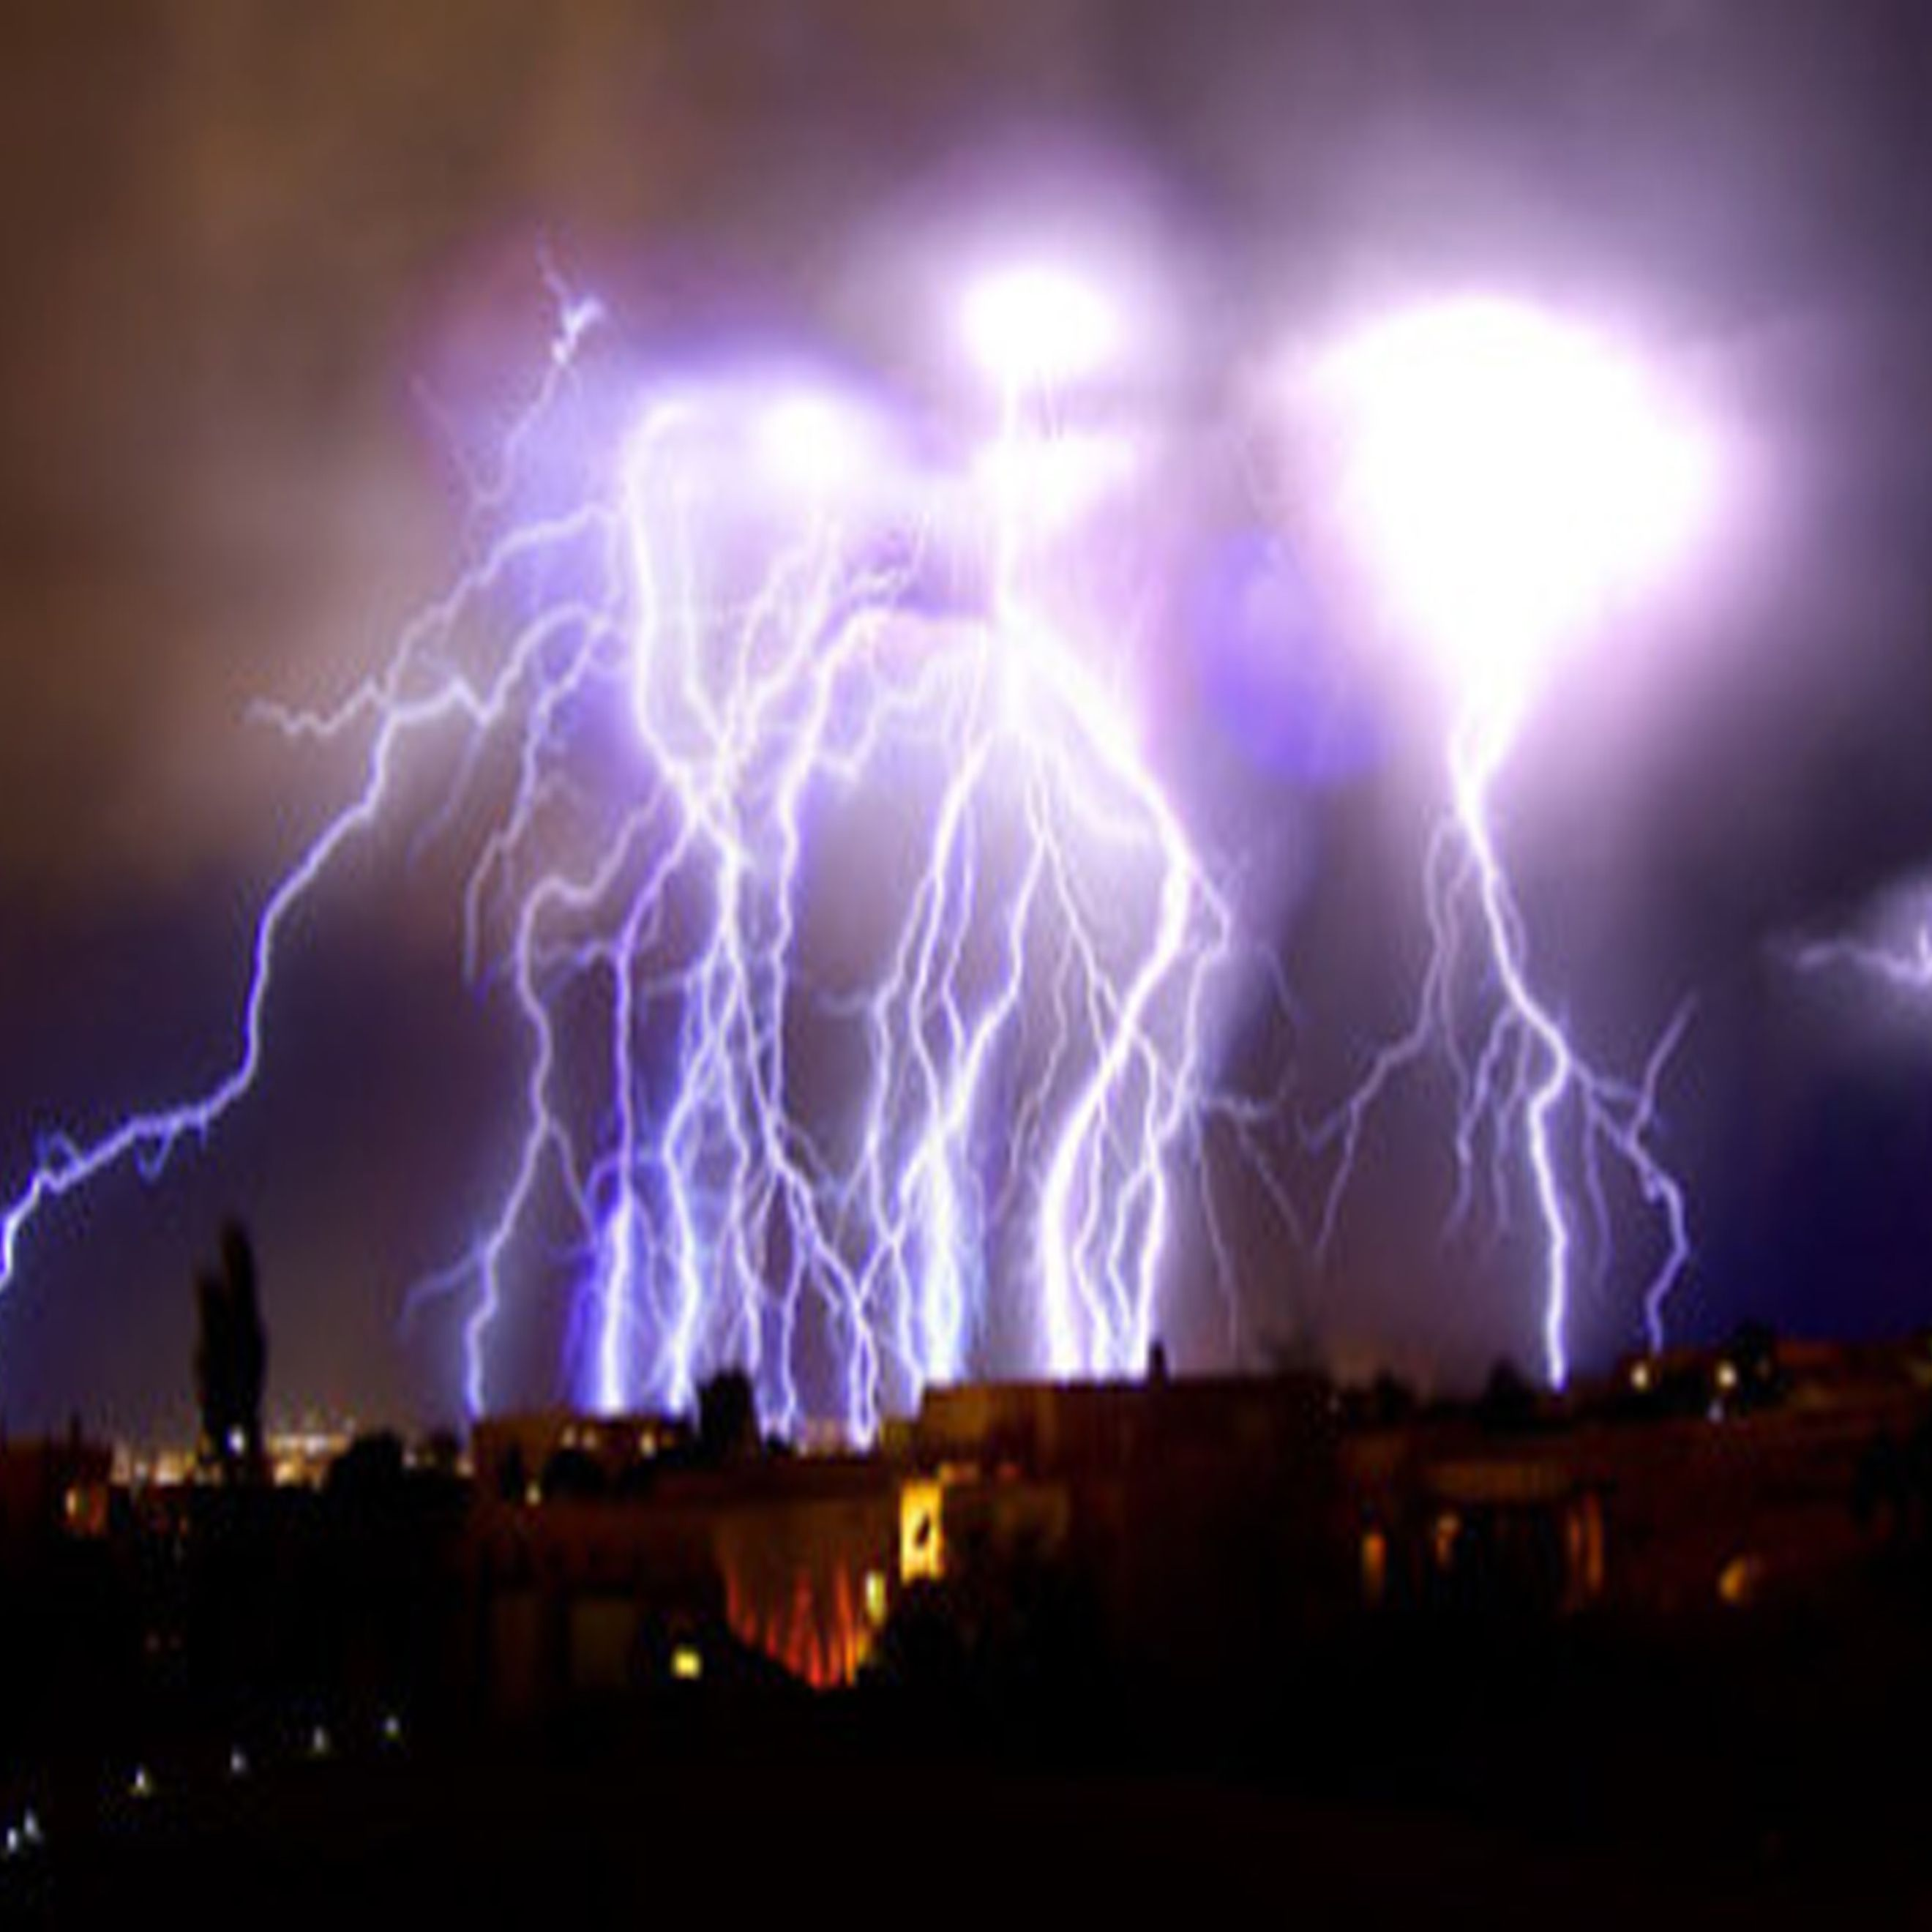 They say lighting doesn't strike the same place twice, but these bolts have bombarded the same area over eleven hair-raising minutes. Each individual lightning bolt pounds the ground with an average power of one billion volts, so the force of dozens of bolts a second over more than ten minutes can barely be imaged.